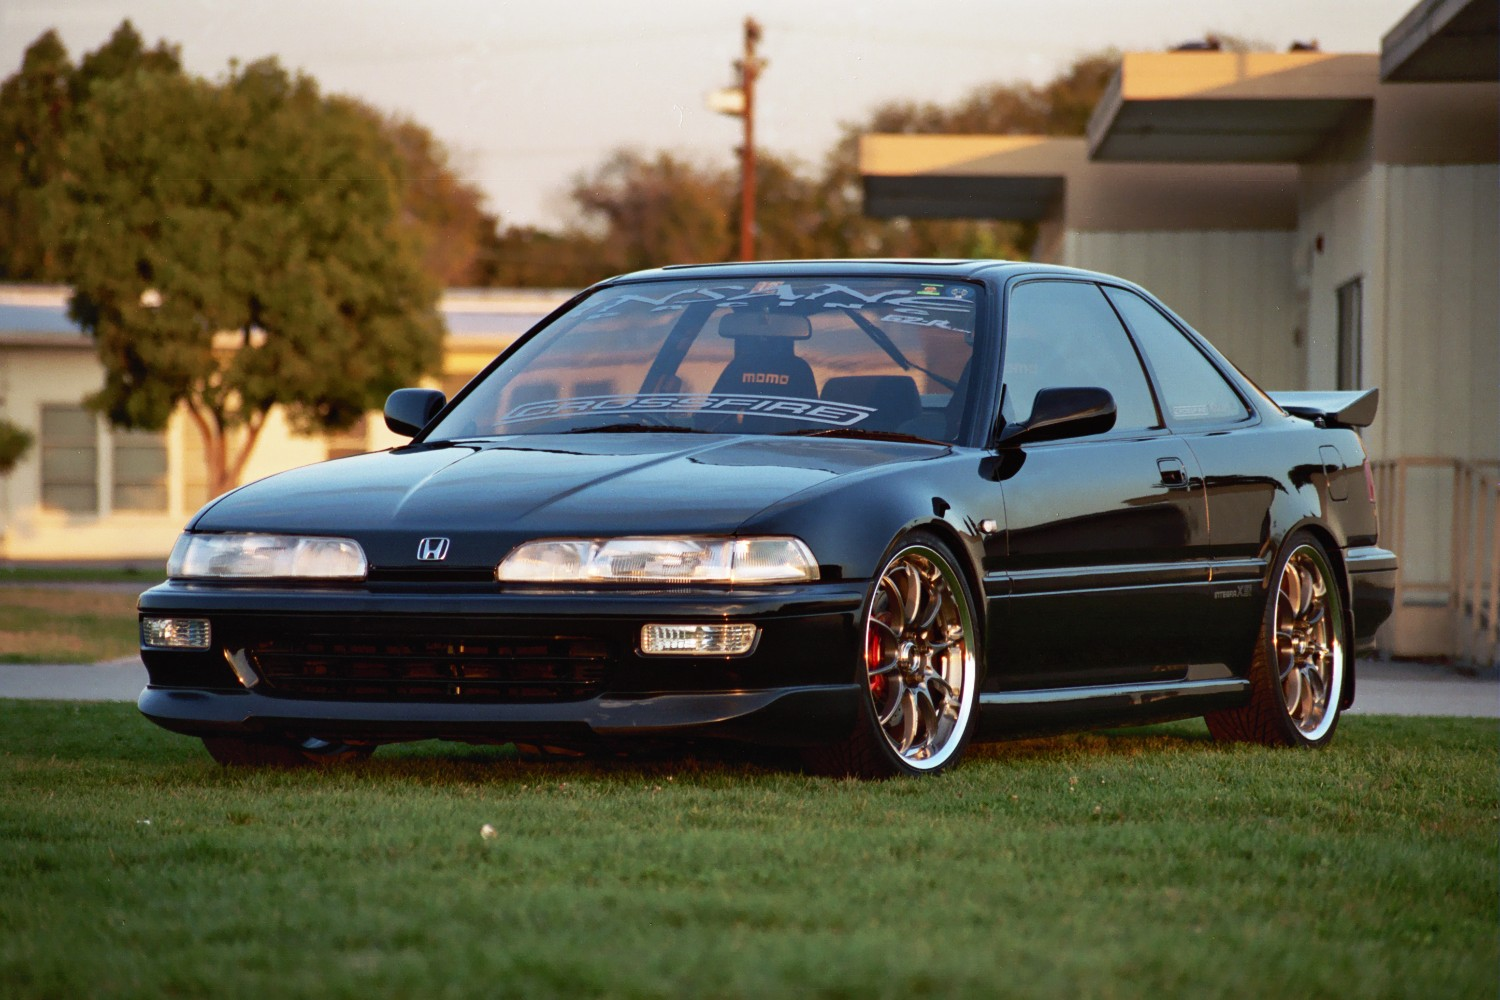 181881626731 as well Rivent On Fender Flares additionally Collectible Classic 1992 1993 Acura Integra Gs R also Honda additionally Acura integra. on 1993 acura integra